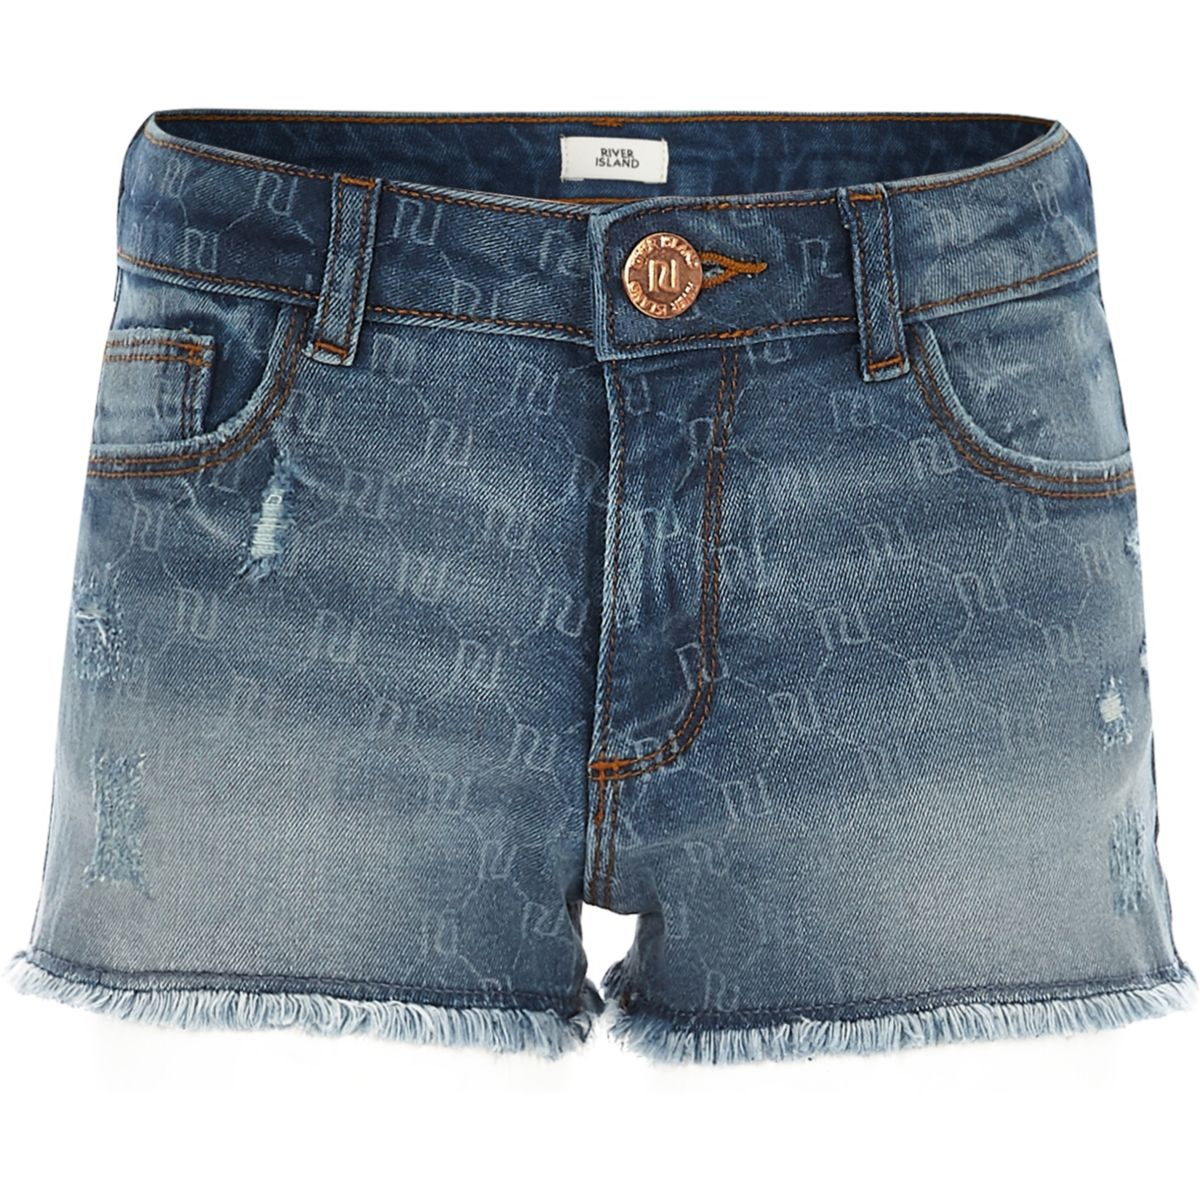 Girls RI monogram denim shorts